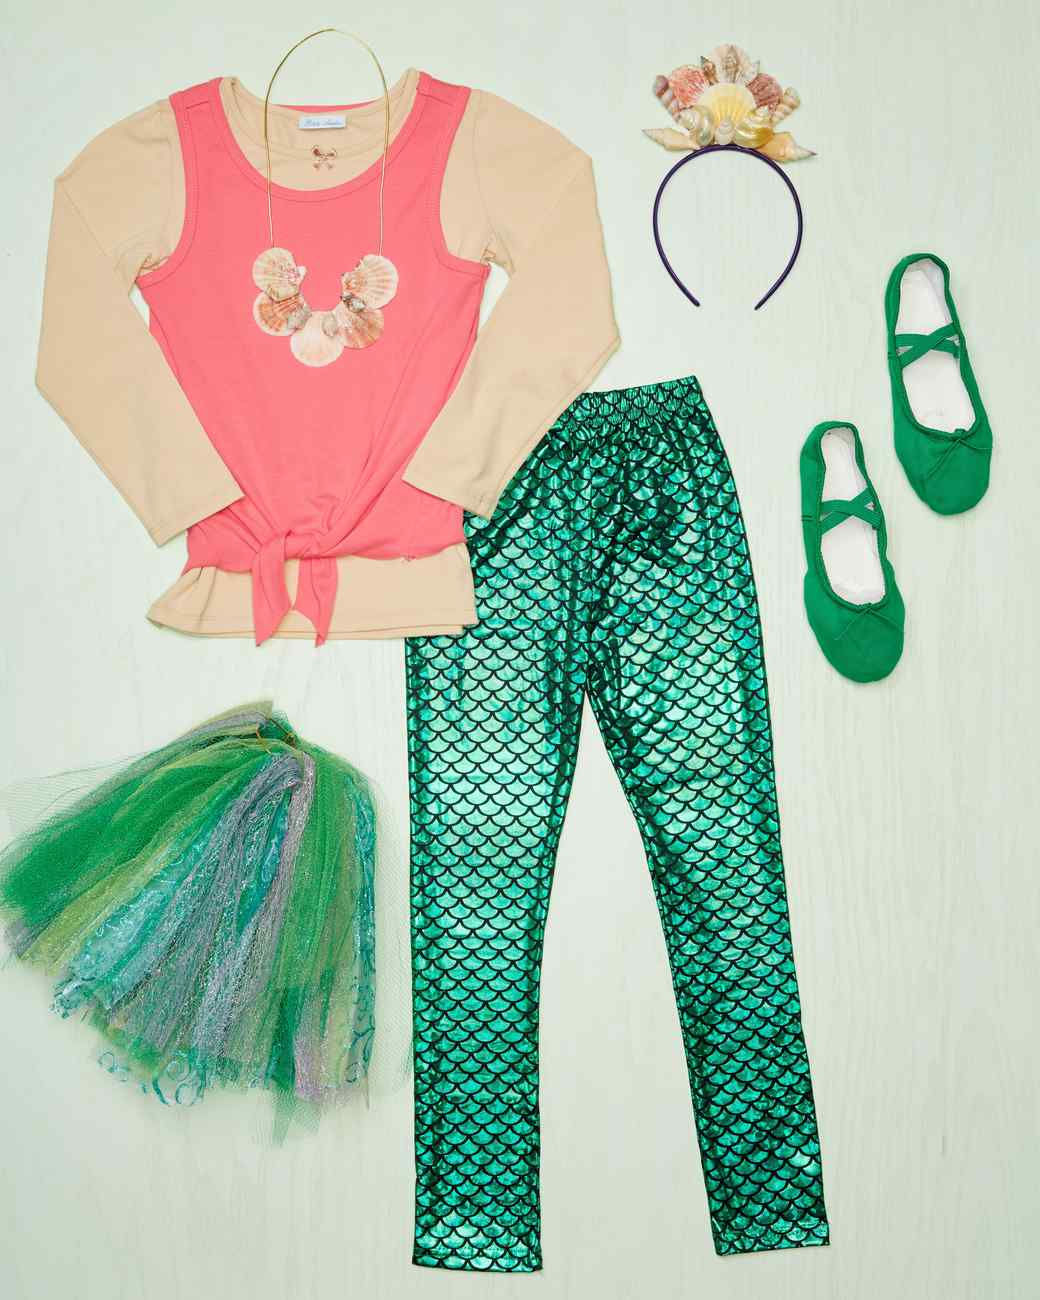 mermaid costume materials